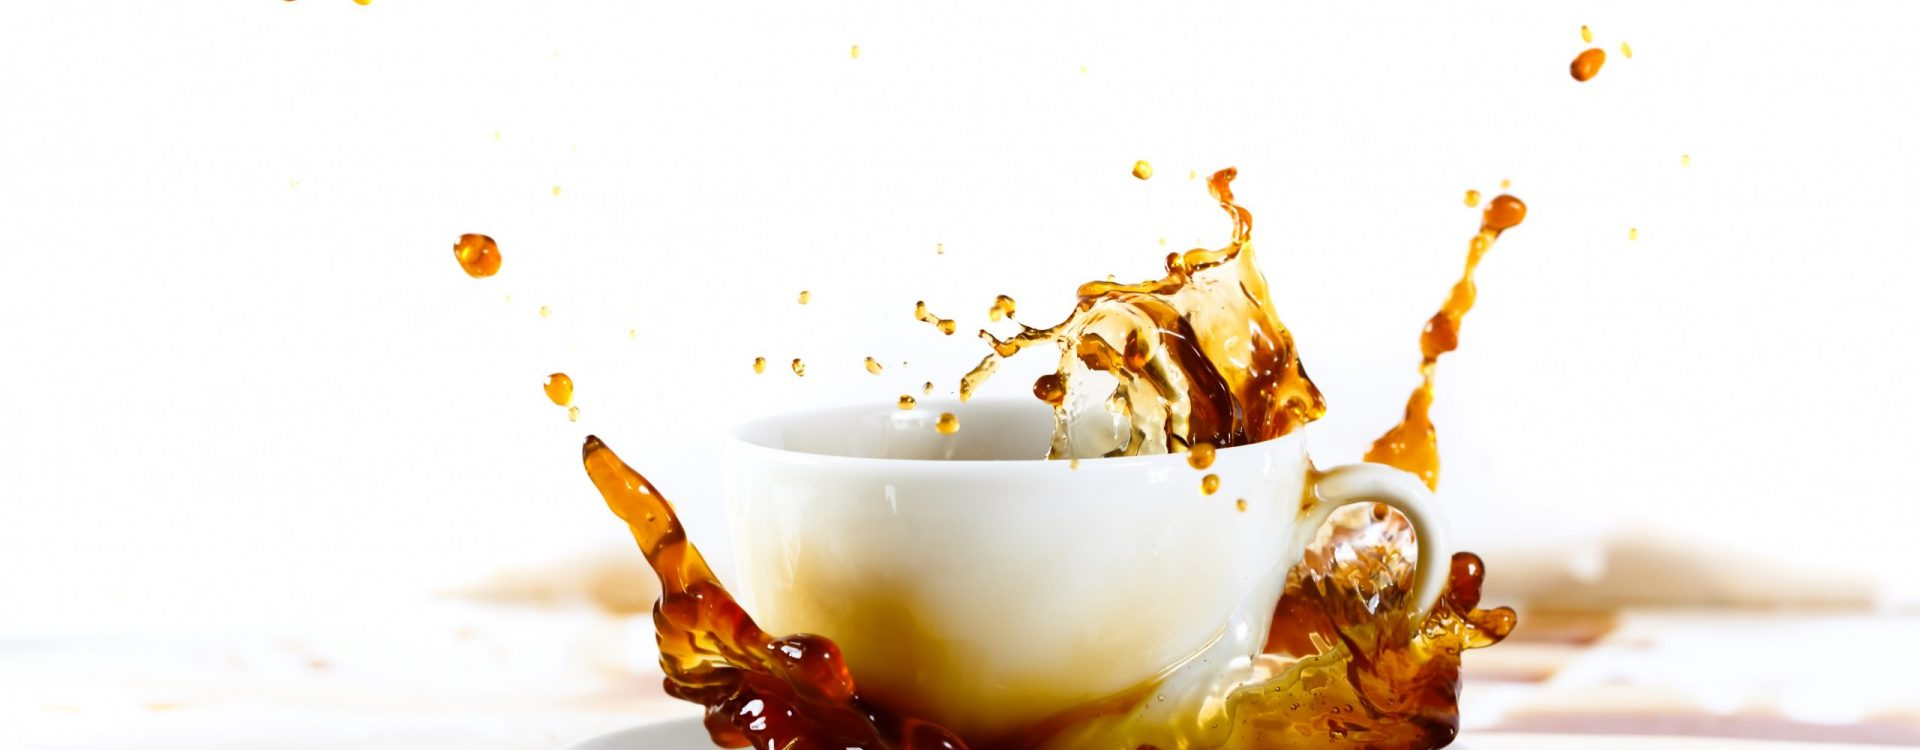 Cup of coffee creating splash. White background, coffee stains. Coffee break, breakfast concept.